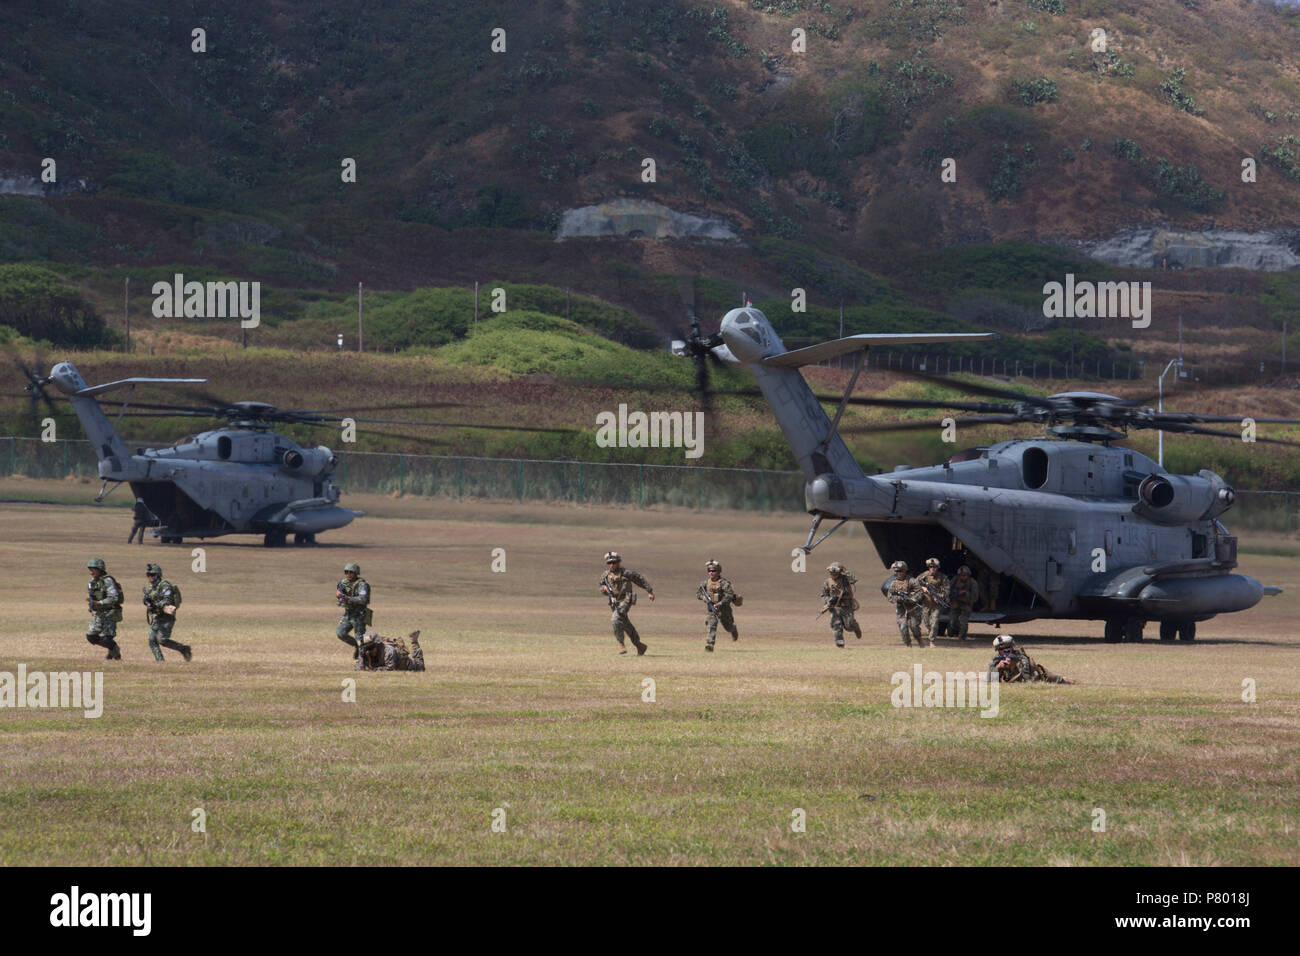 180706-M-KC456-1114 MARINE CORPS BASE HAWAII (July 6, 2018)  Philippine and U.S. Marines with Company A, 1st Battalion, 3rd Marine Regiment, disembark from a CH-53 Super Stallion helicopter and post security during an air-assault rehearsal as part of Rim of the Pacific (RIMPAC) exercise on Marine Corps Base Hawaii July 6, 2018. RIMPAC provides high-value training for task-organized, highly-capable Marine Air-Ground Task Force and enhances the critical crisis response capability of U.S. Marines in the Pacific. Twenty-five nations, 46 ships, five submarines, about 200 aircraft and 25,000 personn - Stock Image